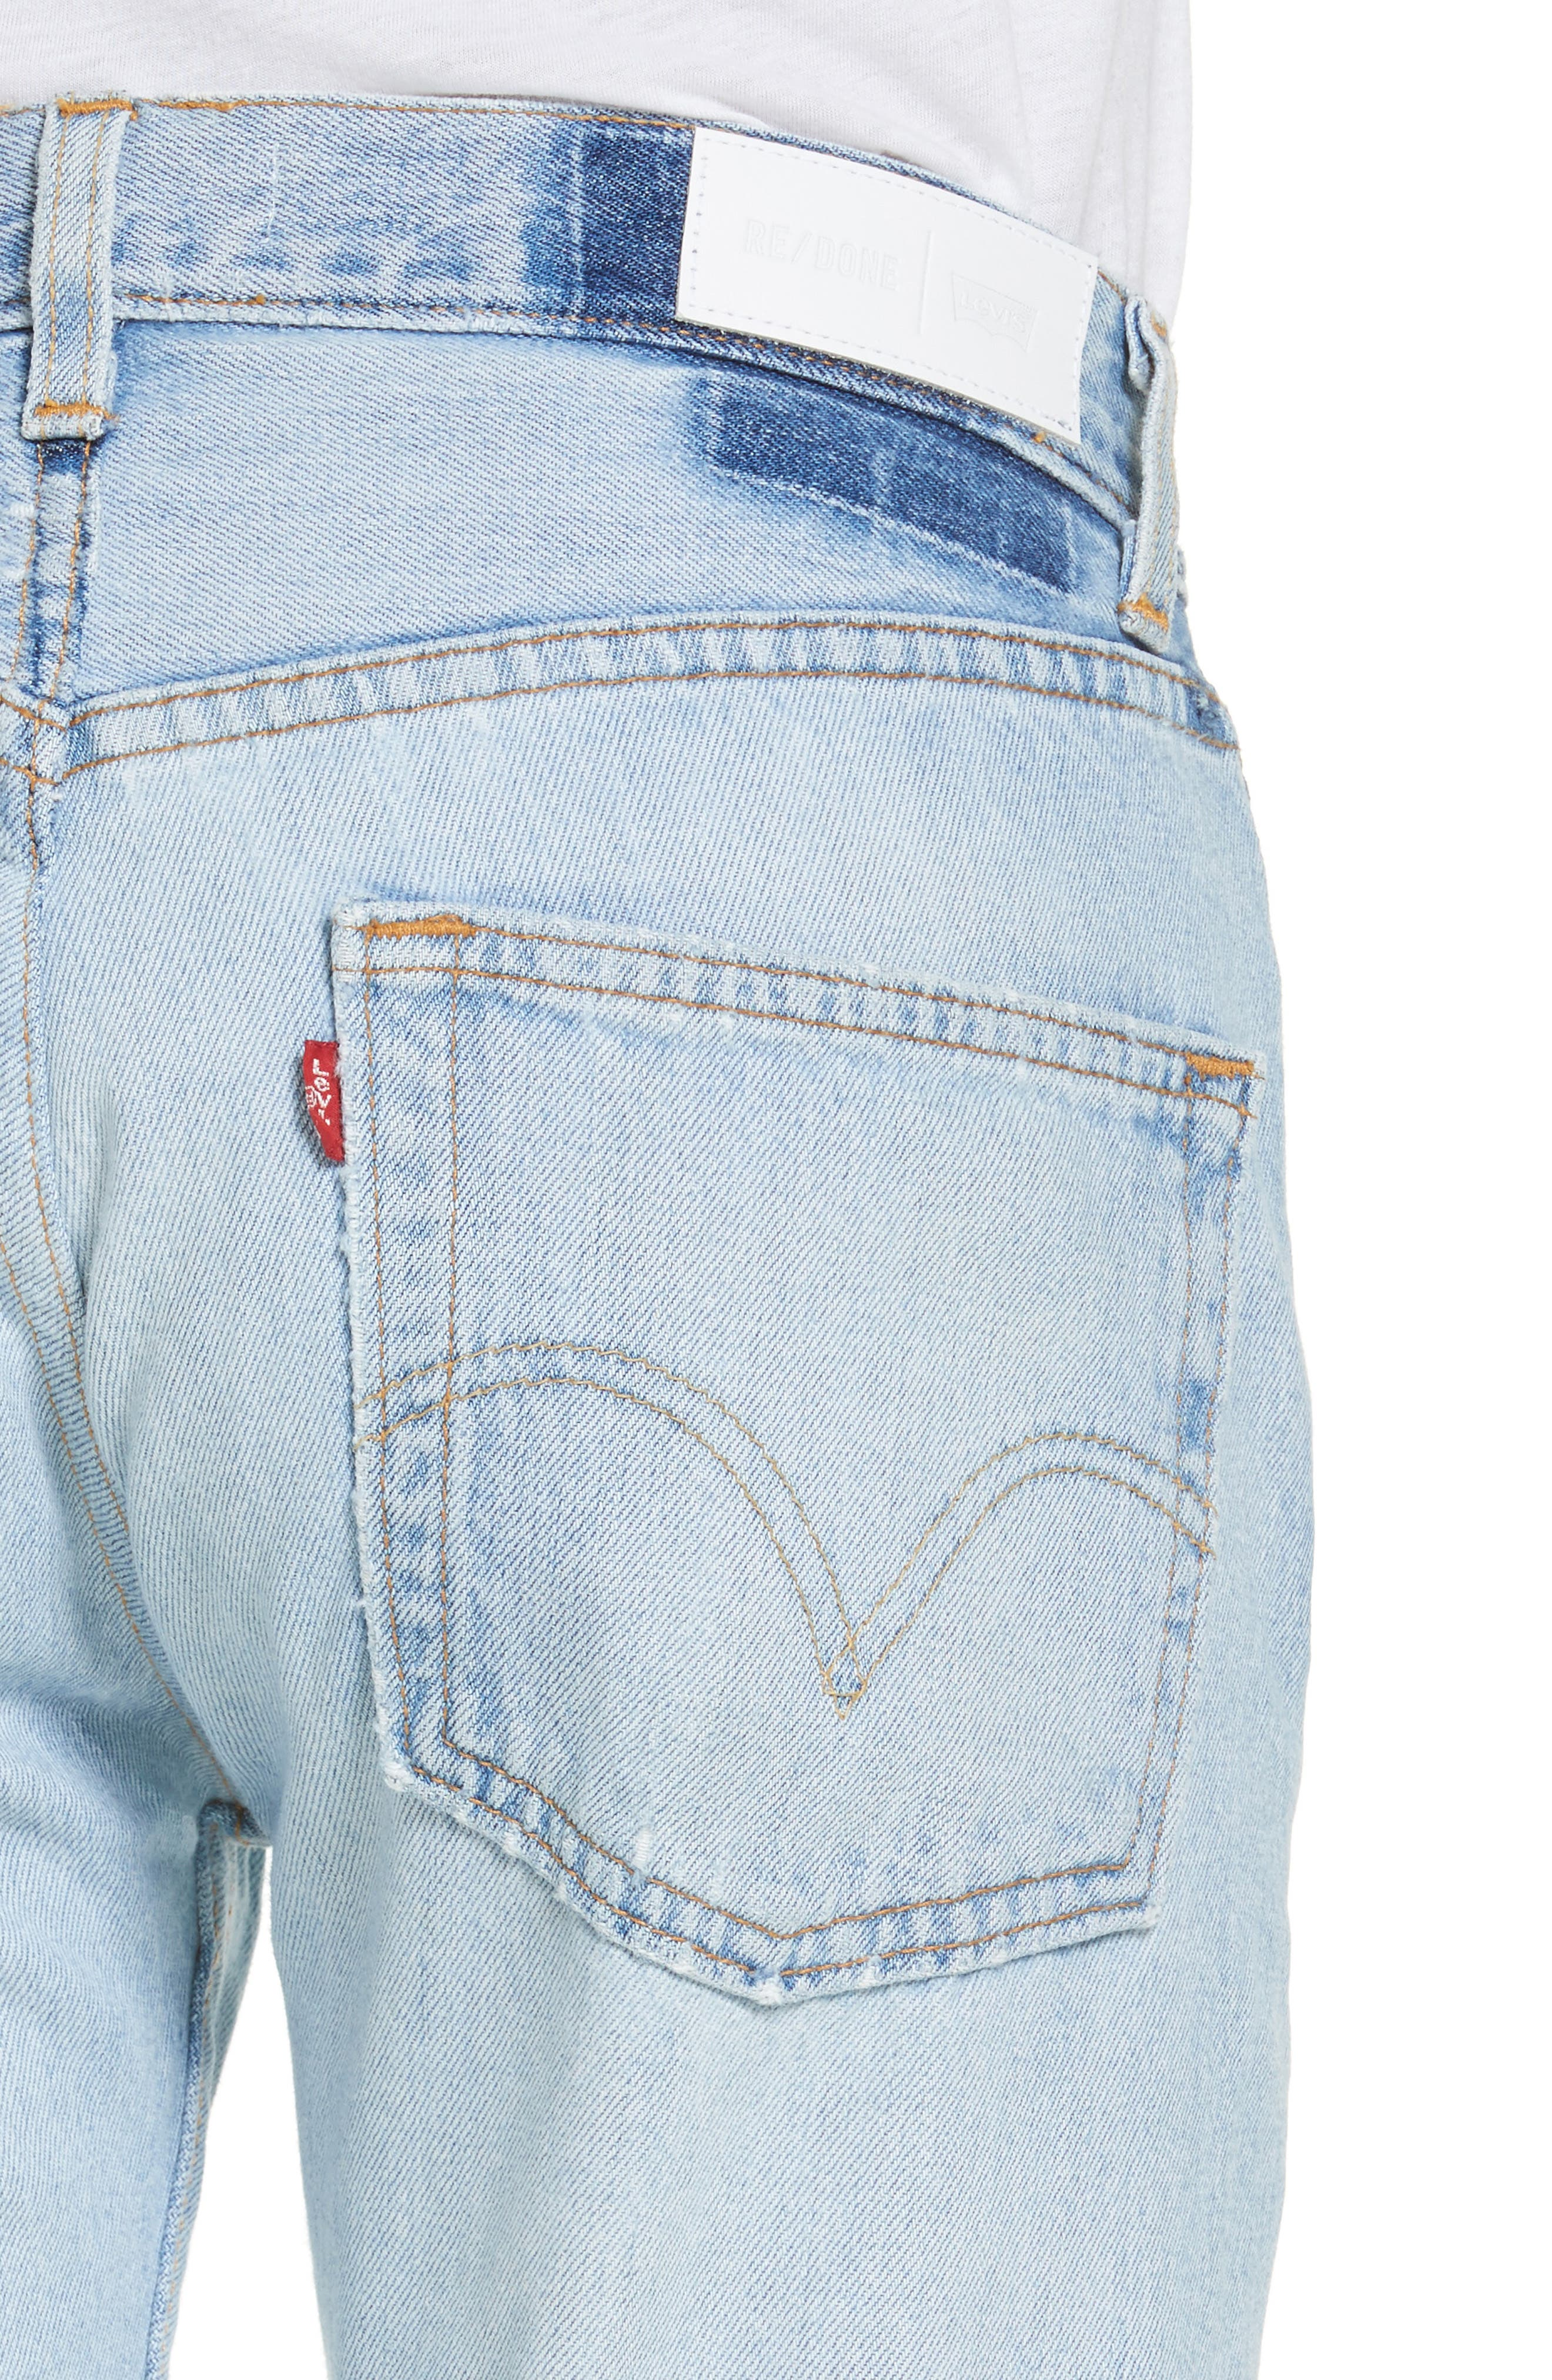 Reconstructed Crop Jeans,                             Alternate thumbnail 4, color,                             400